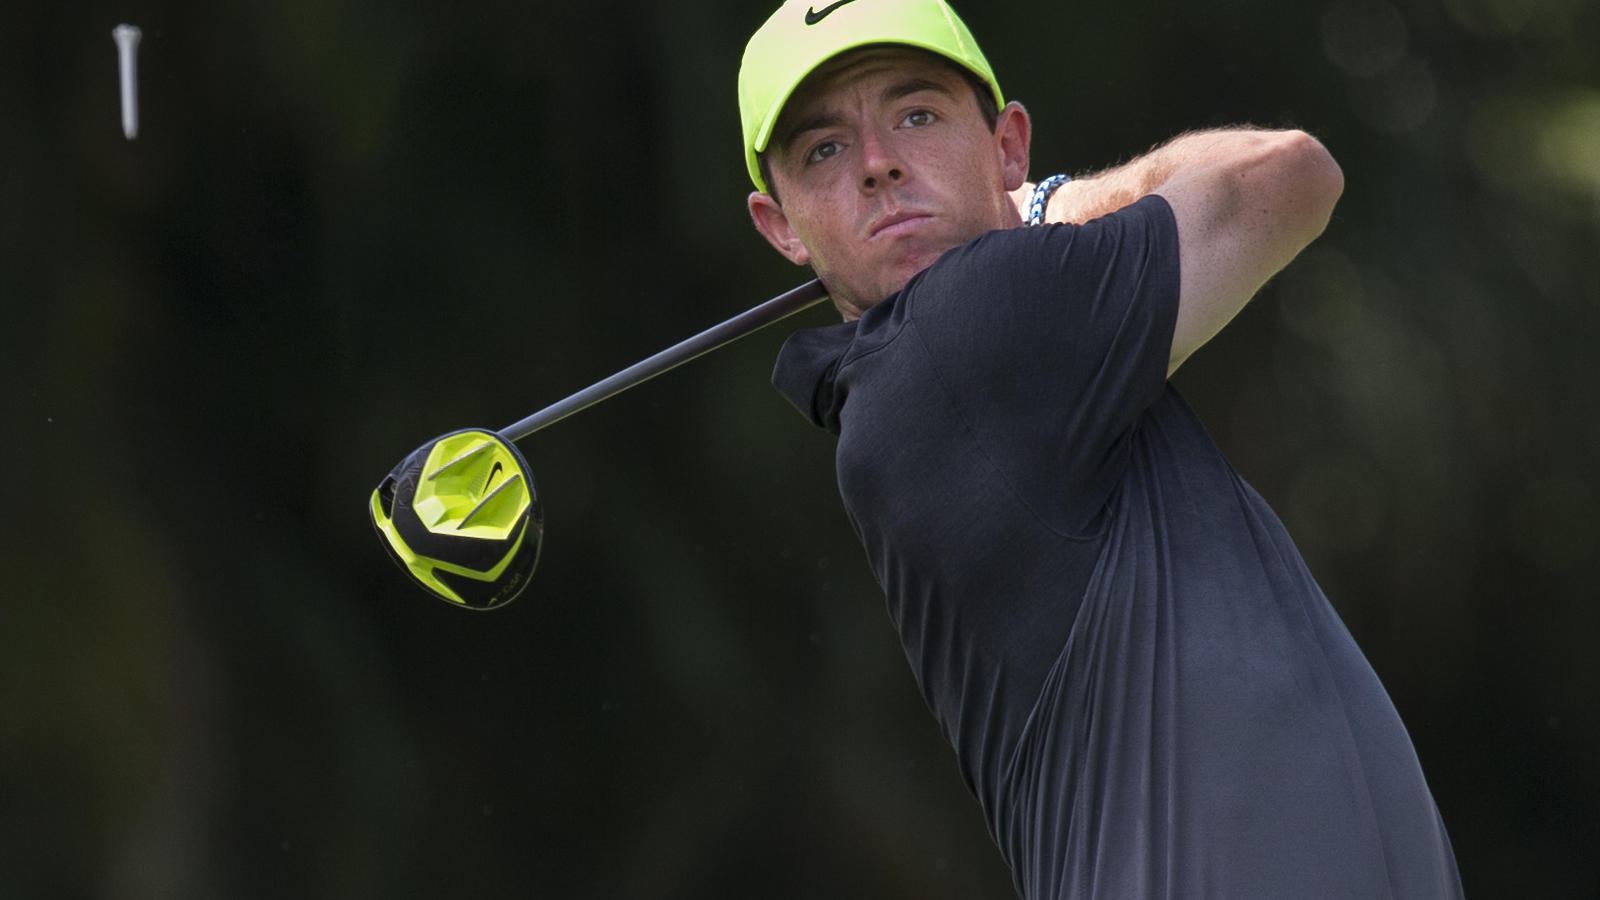 Rory McIlroy Adds Nike Vapor Pro Driver to Arsenal